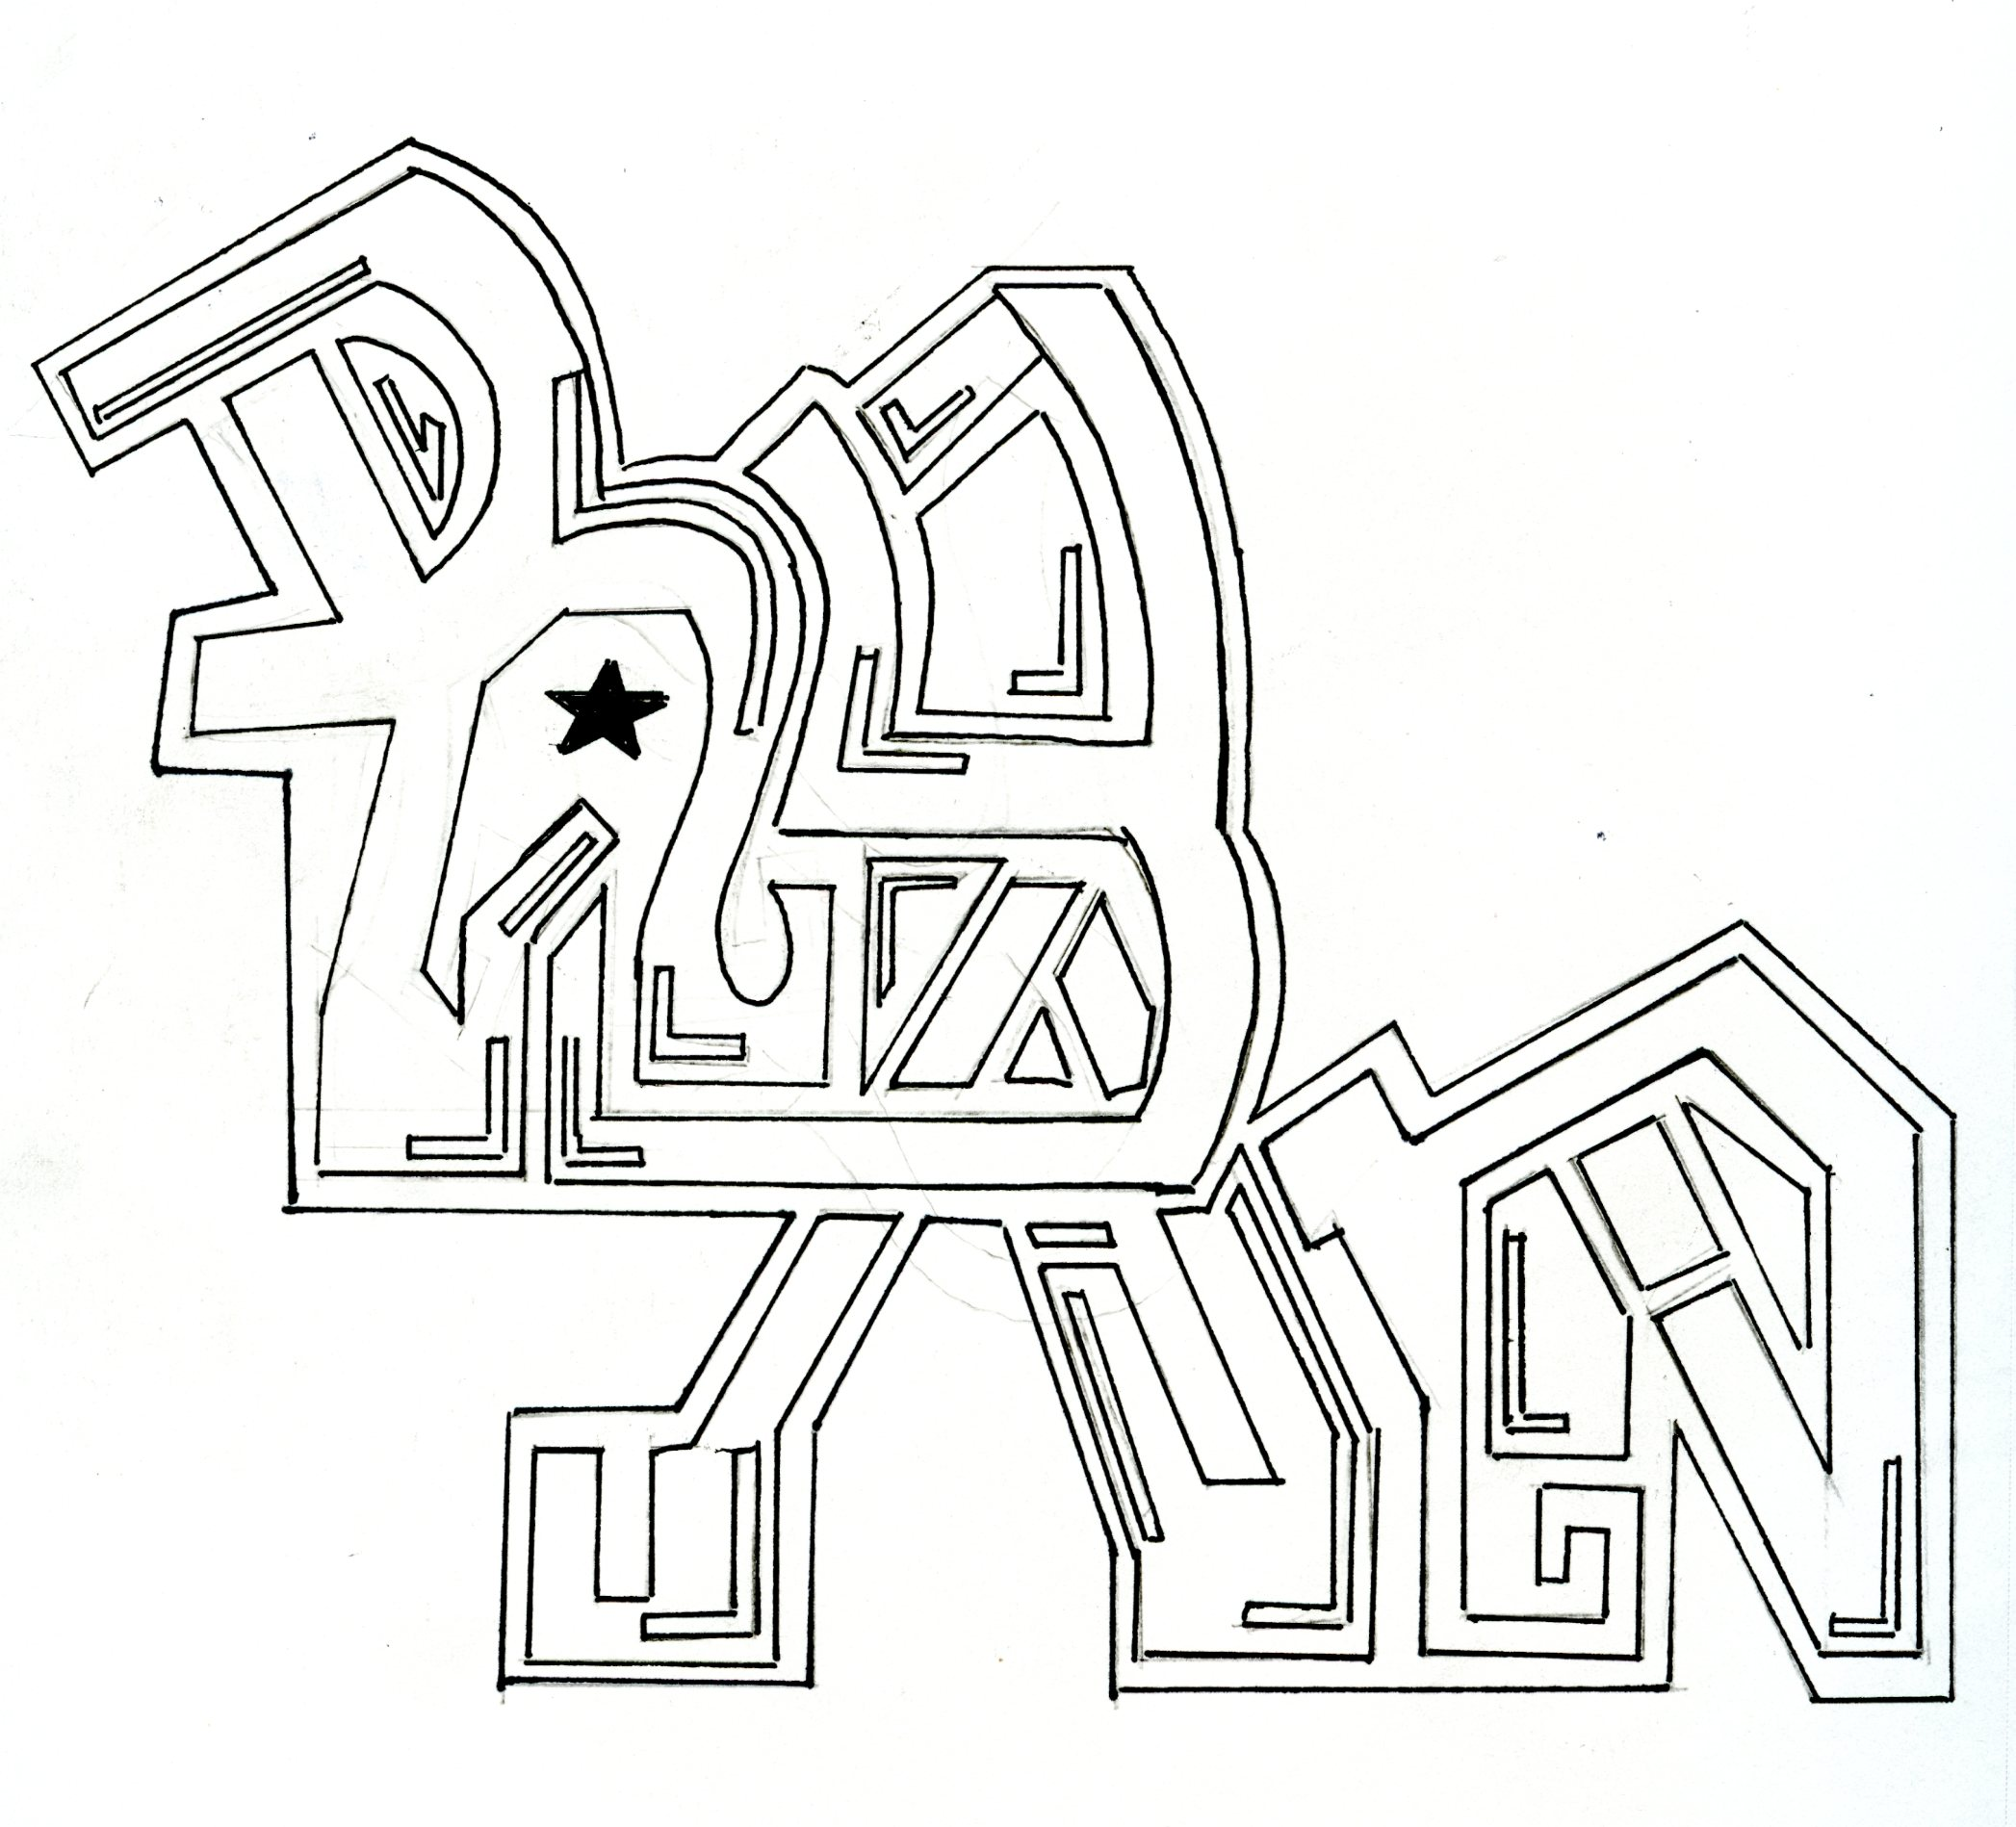 2094x1898 Ryan's Drawings Drawings And Other Graphics